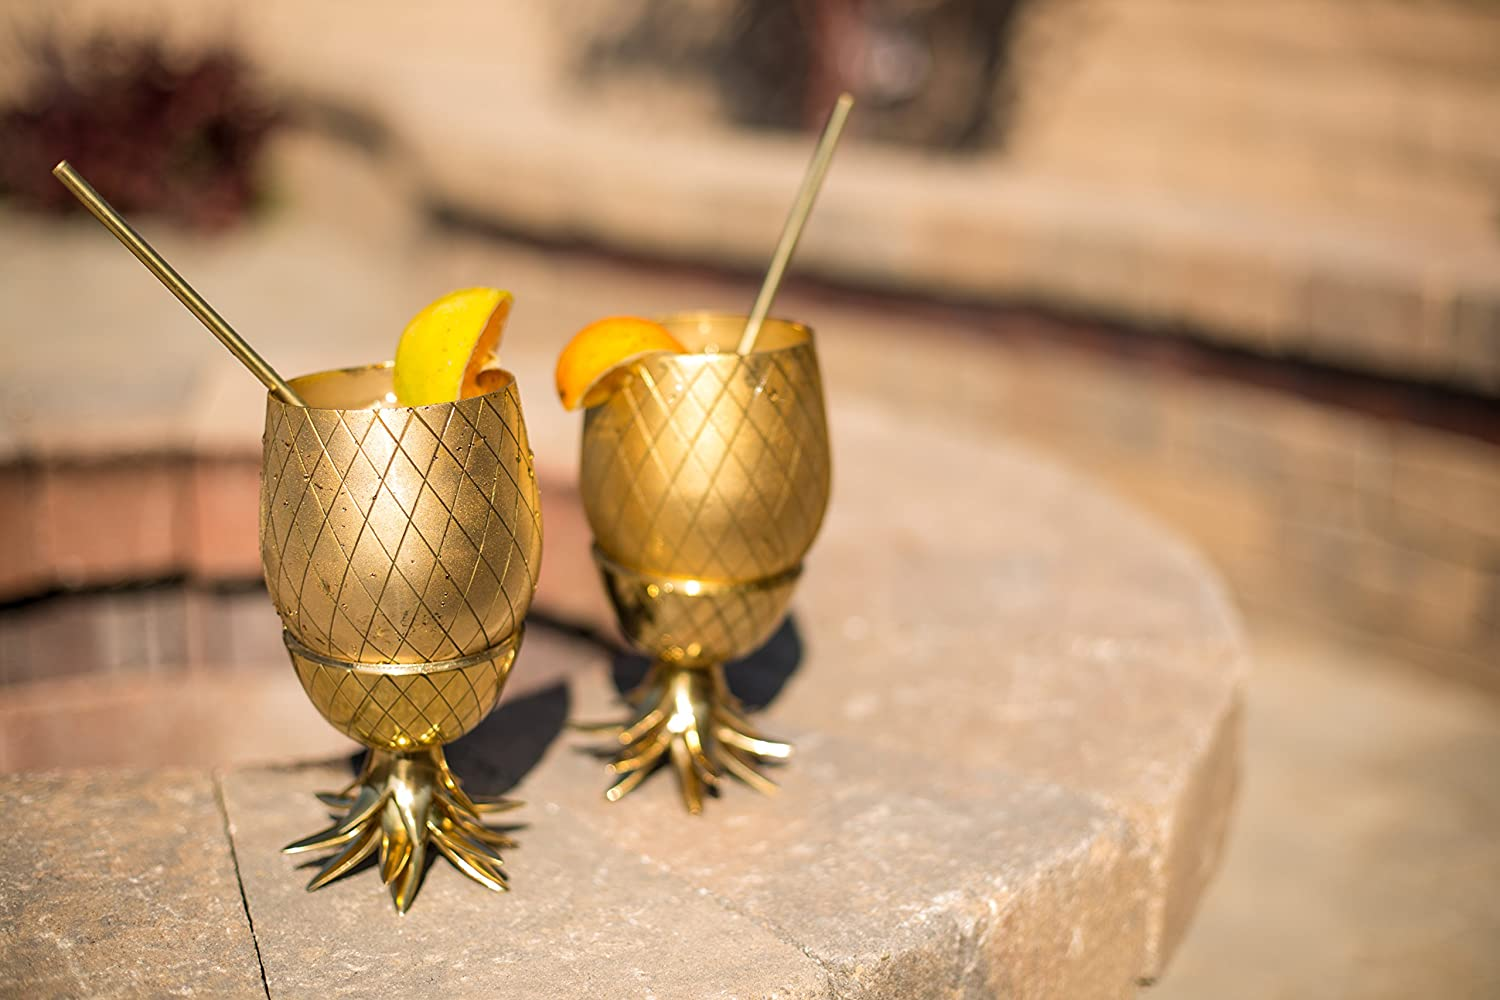 Amazon.com: 20oz Brass Pineapple Mug, Pineapple Cocktail Mug with Straw by  Om Creation: Kitchen & Dining